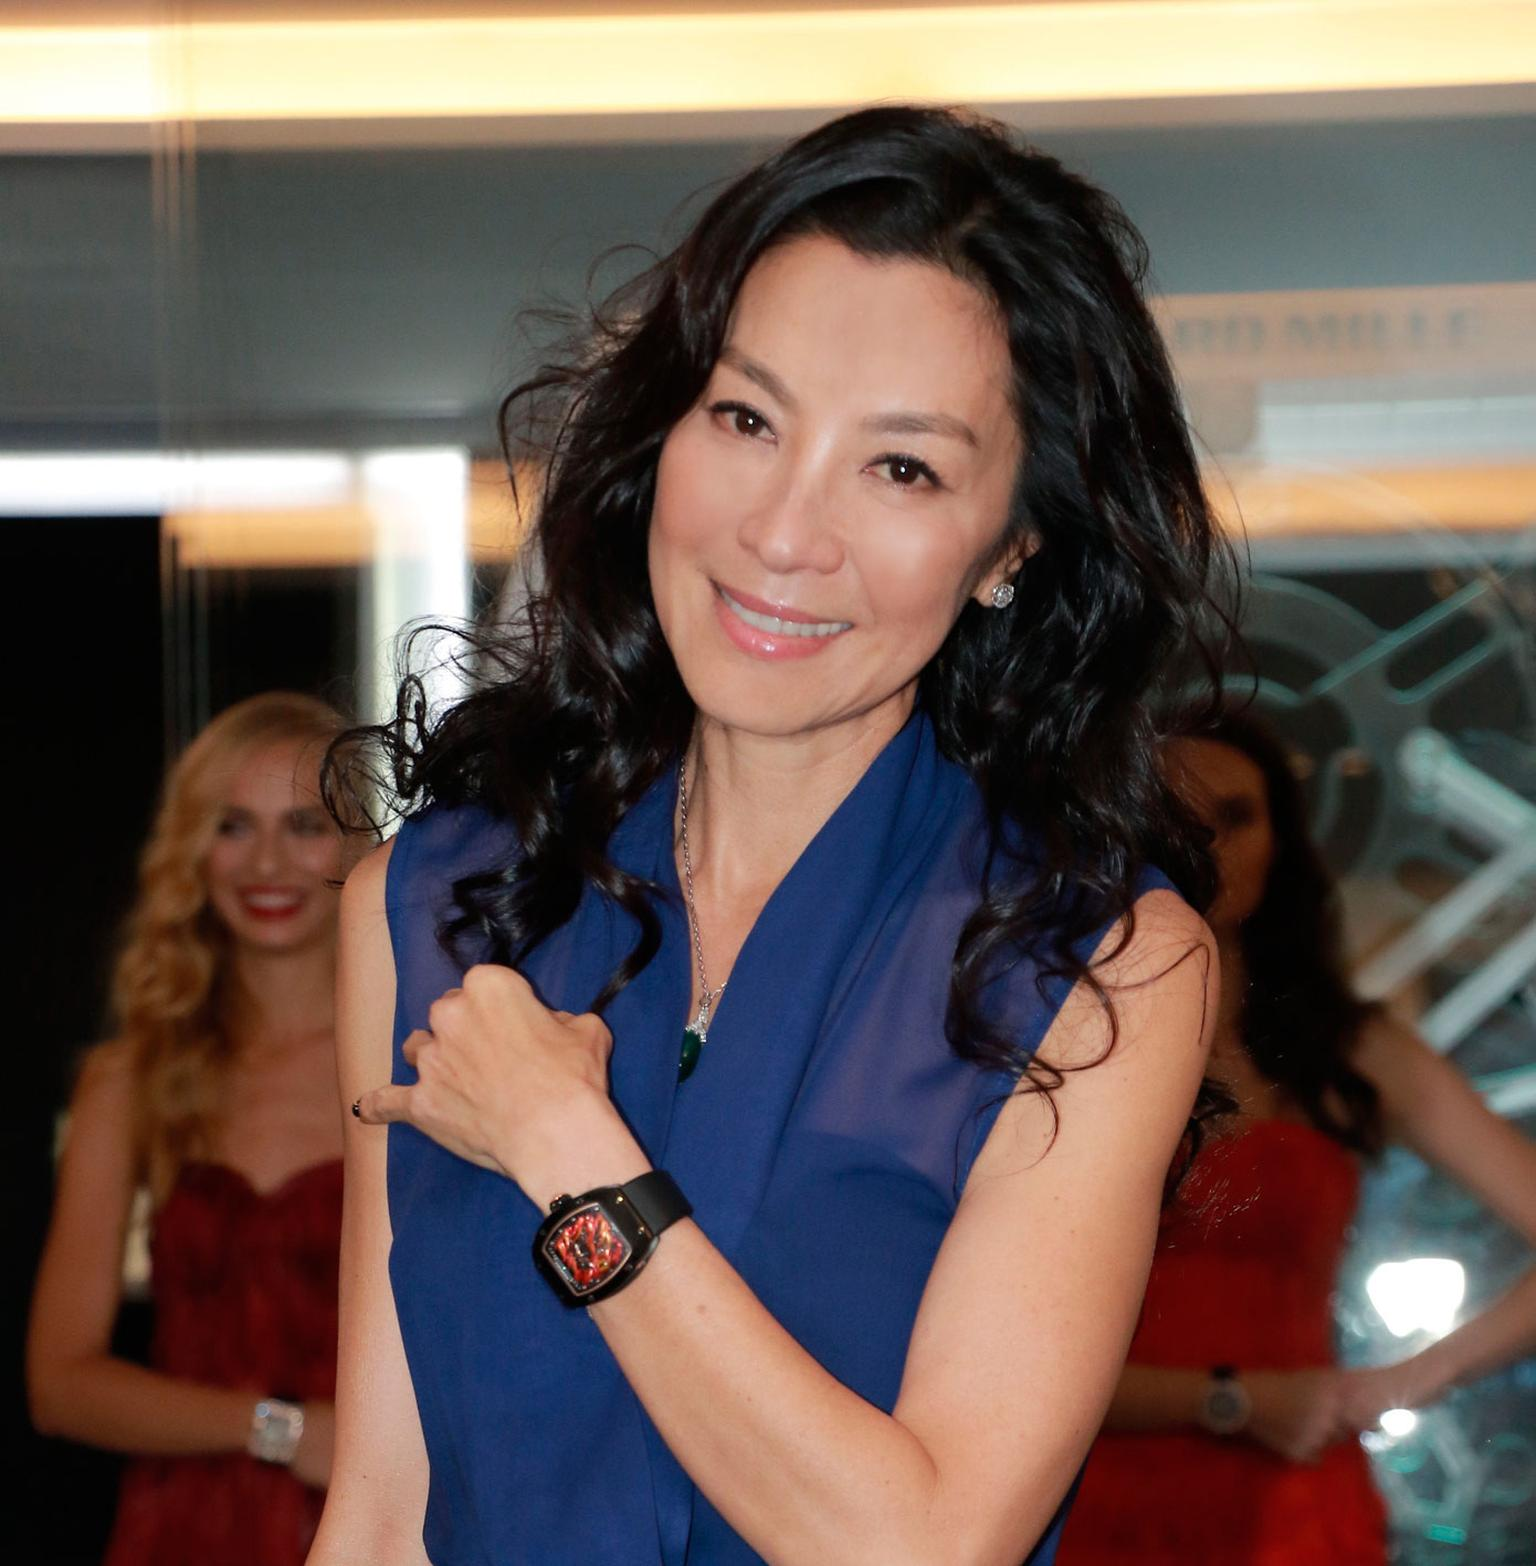 Michelle Yeoh wearing her Richard Mille watch